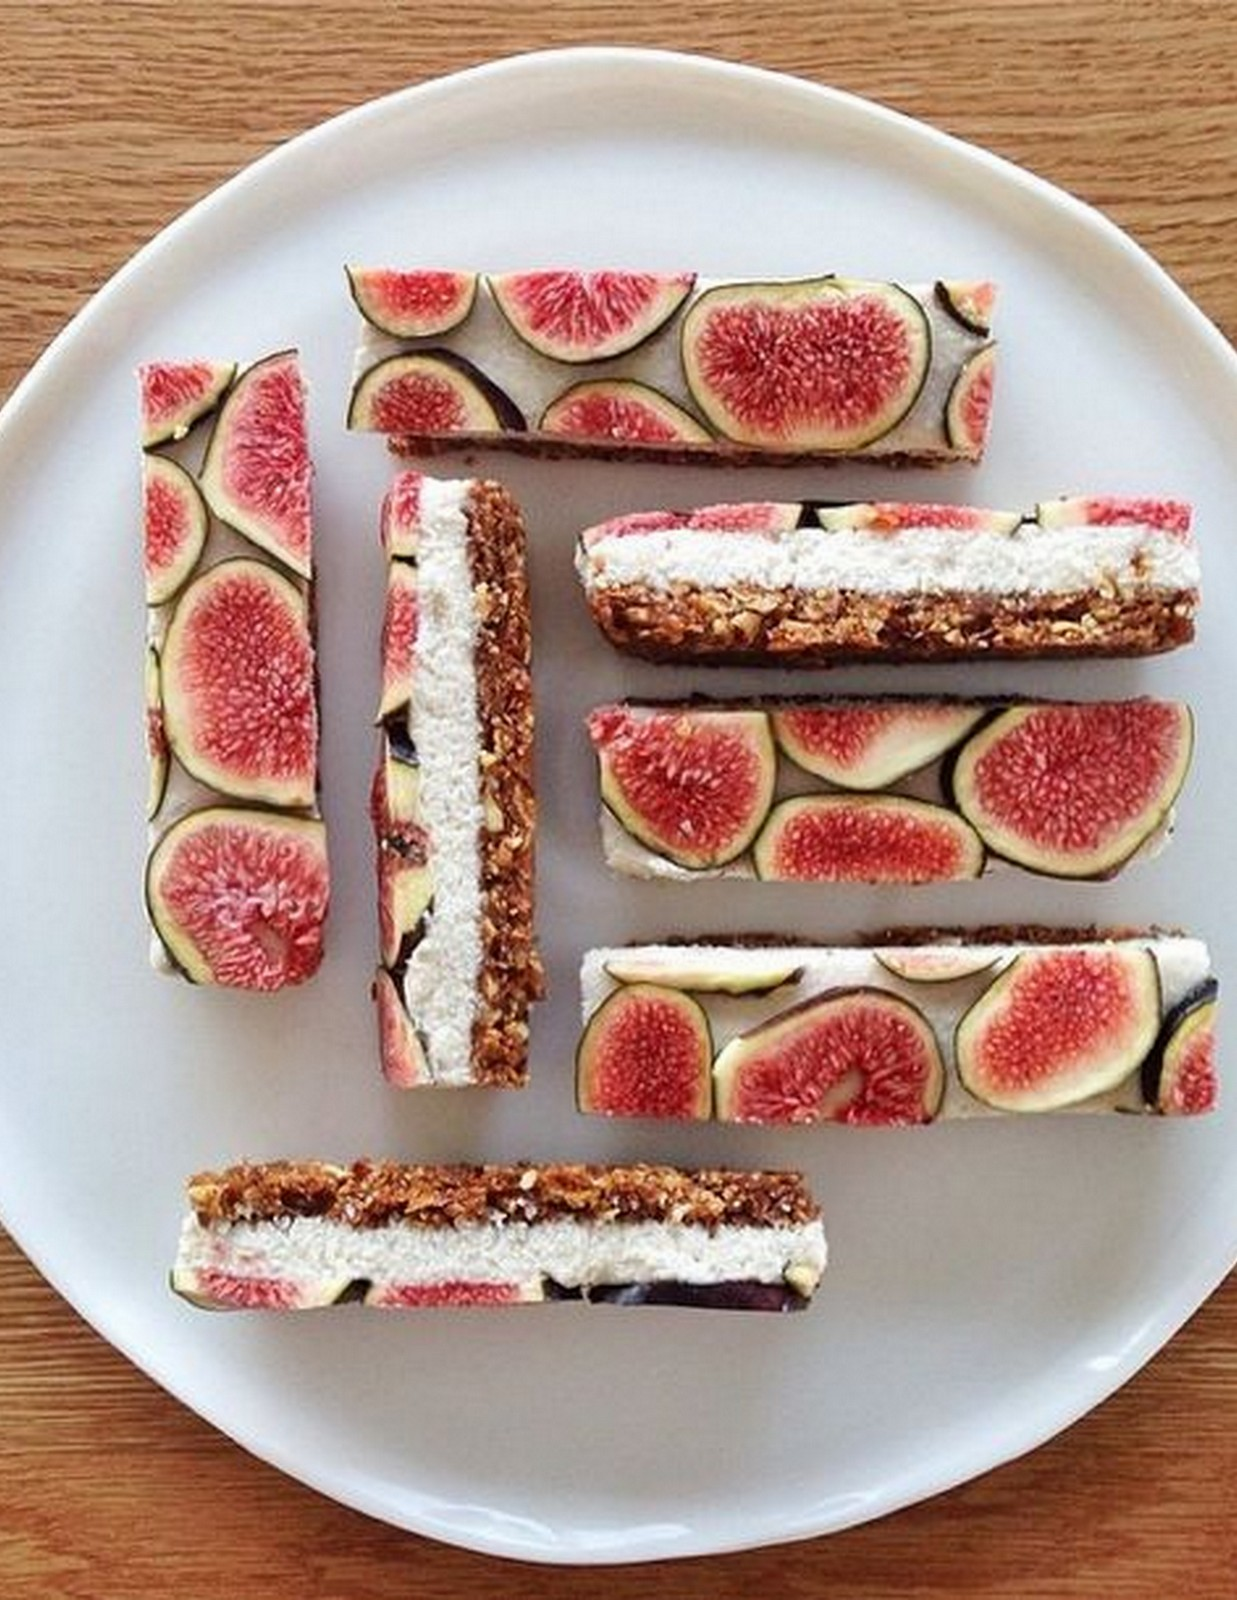 RAW FIG BARS